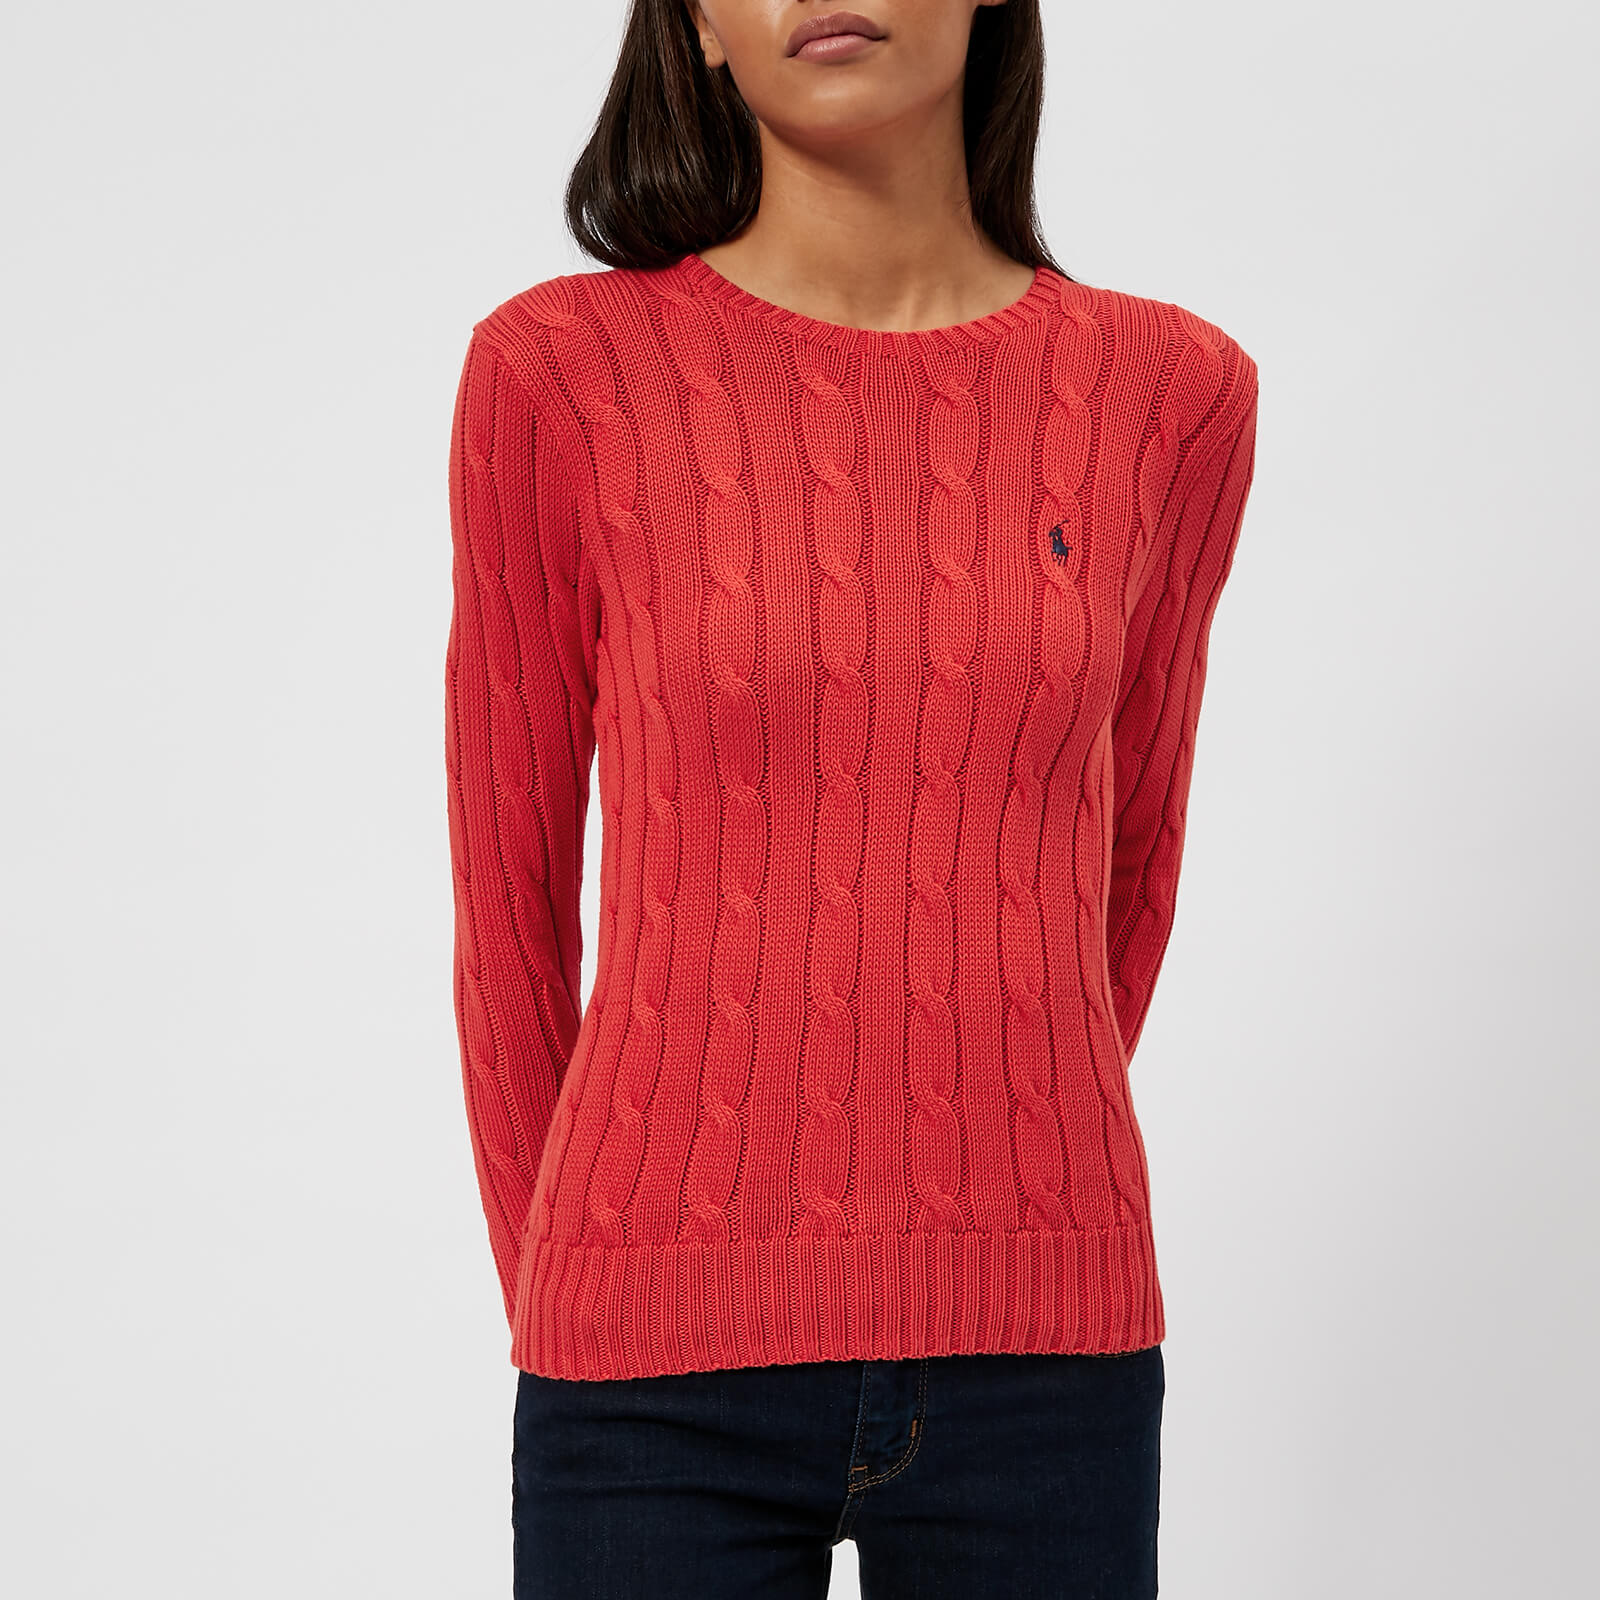 95749443f738 Polo Ralph Lauren Women s Julianna Crew Neck Jumper - Red - Free UK  Delivery over £50